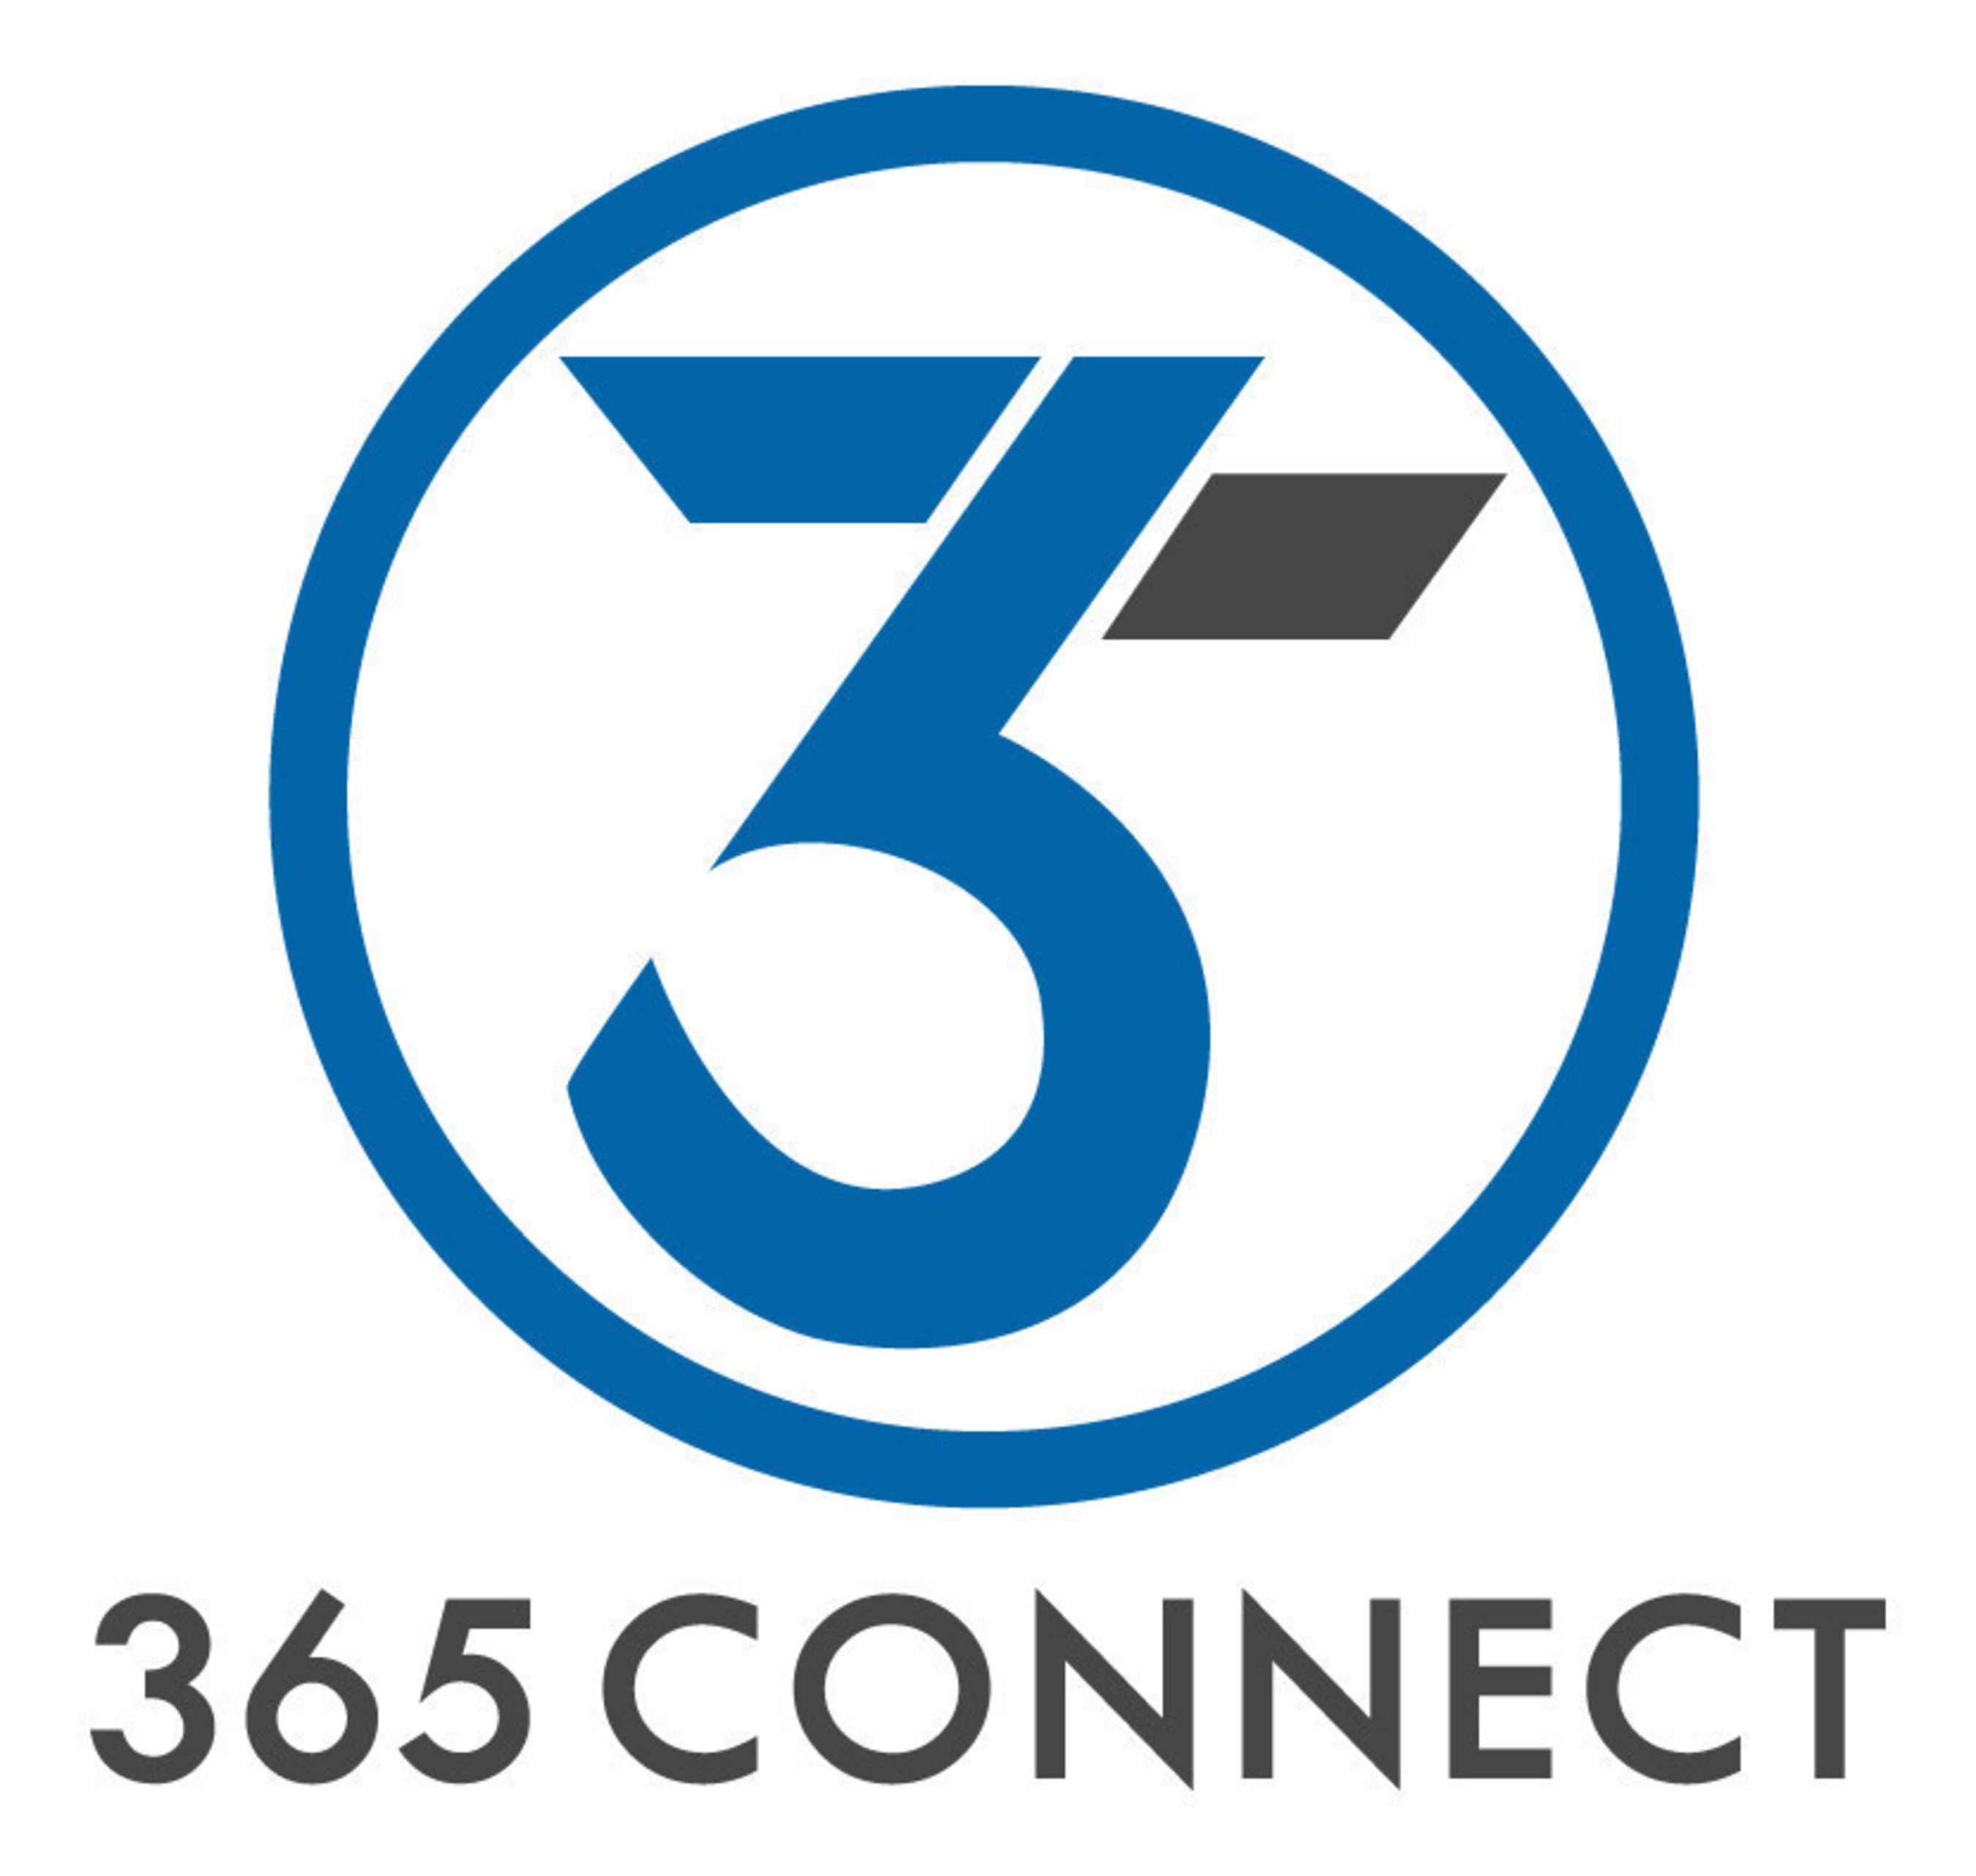 365 Connect Receives Coveted W3 Award for Online Apartment Marketing Platform